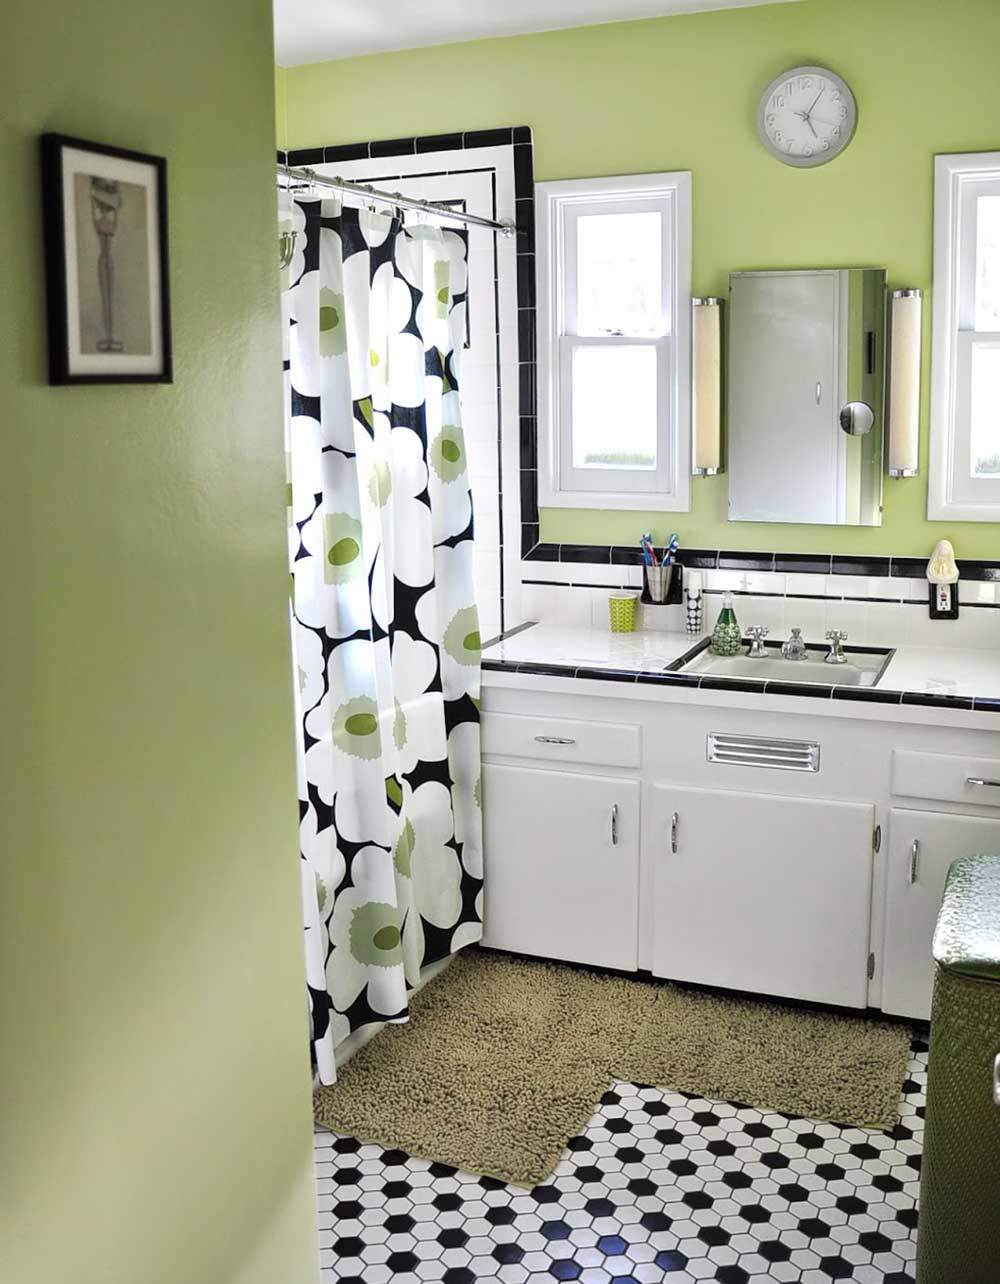 Black and white tile bathrooms - done 6 different ways - Retro ...